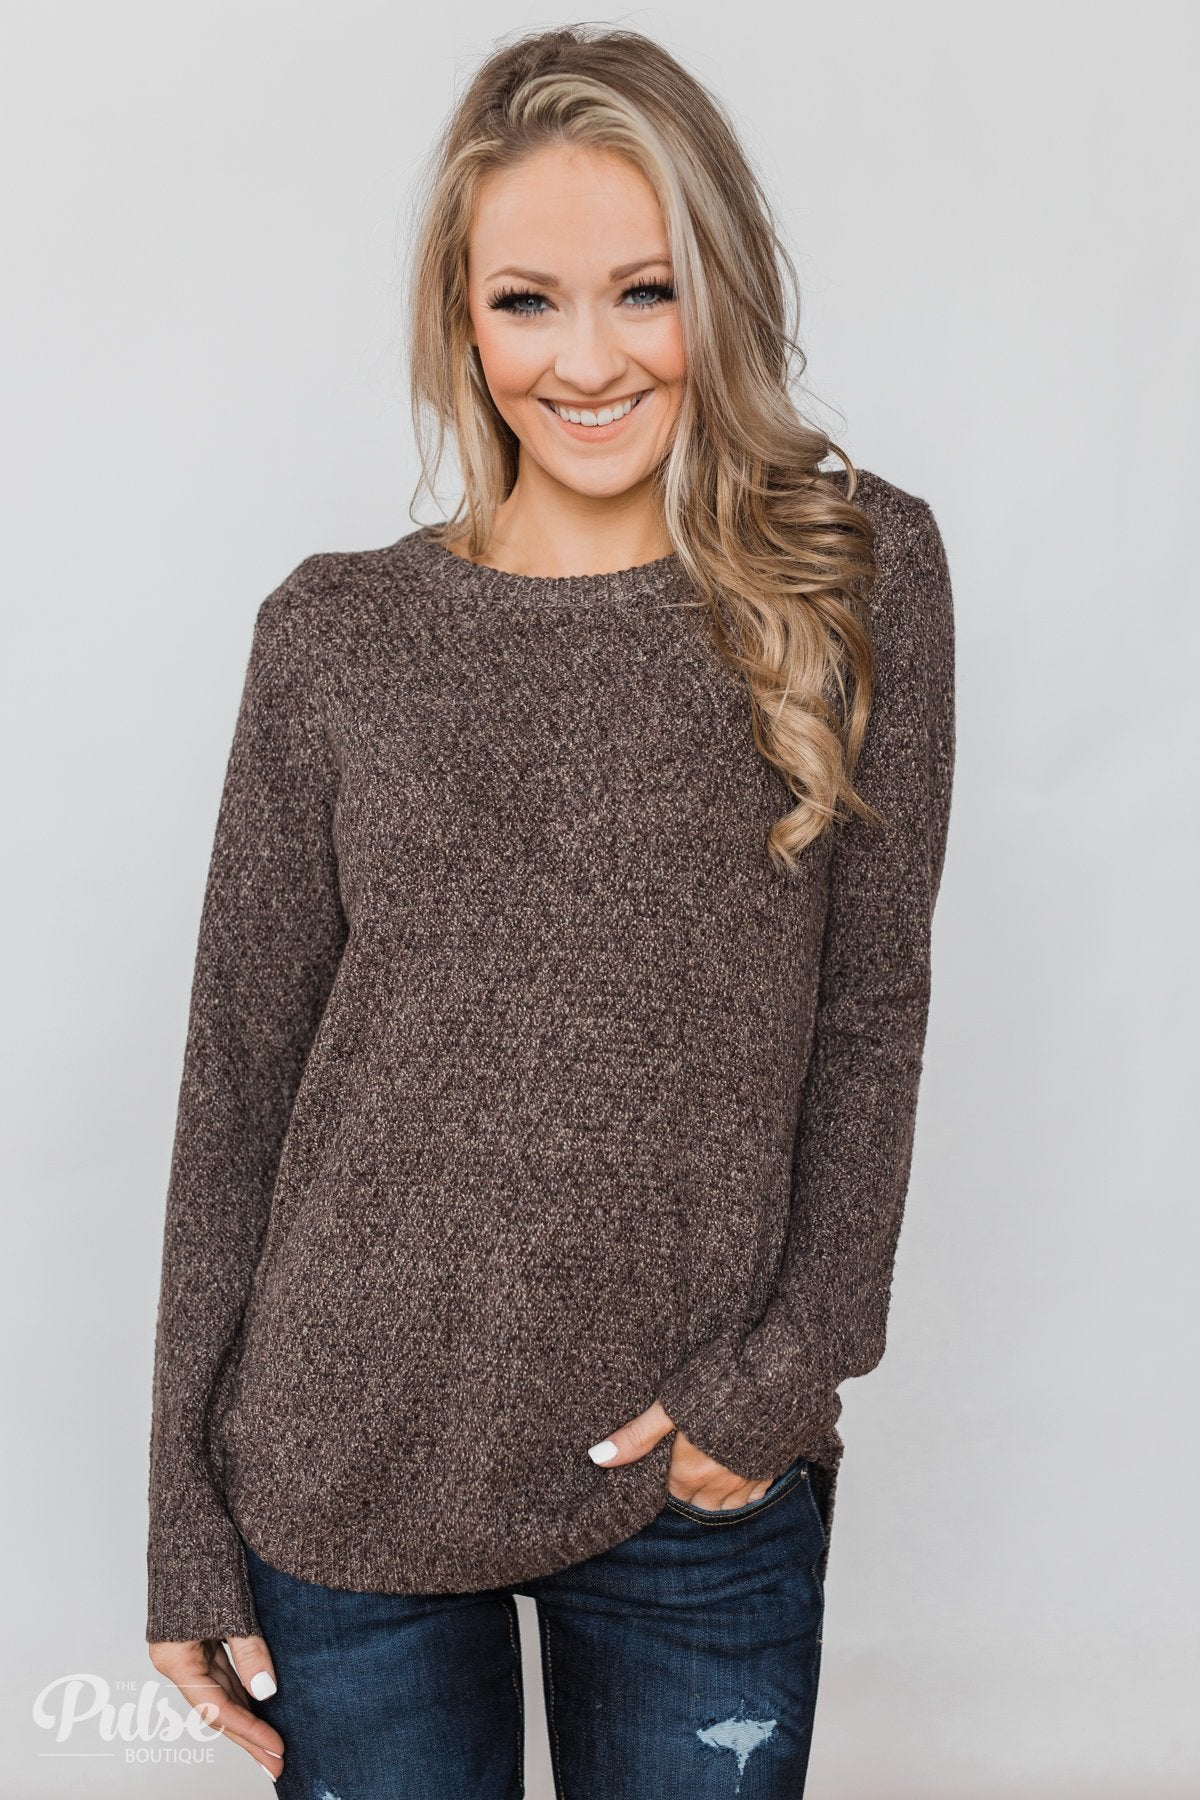 Wherever You Go Knit Sweater- Brown